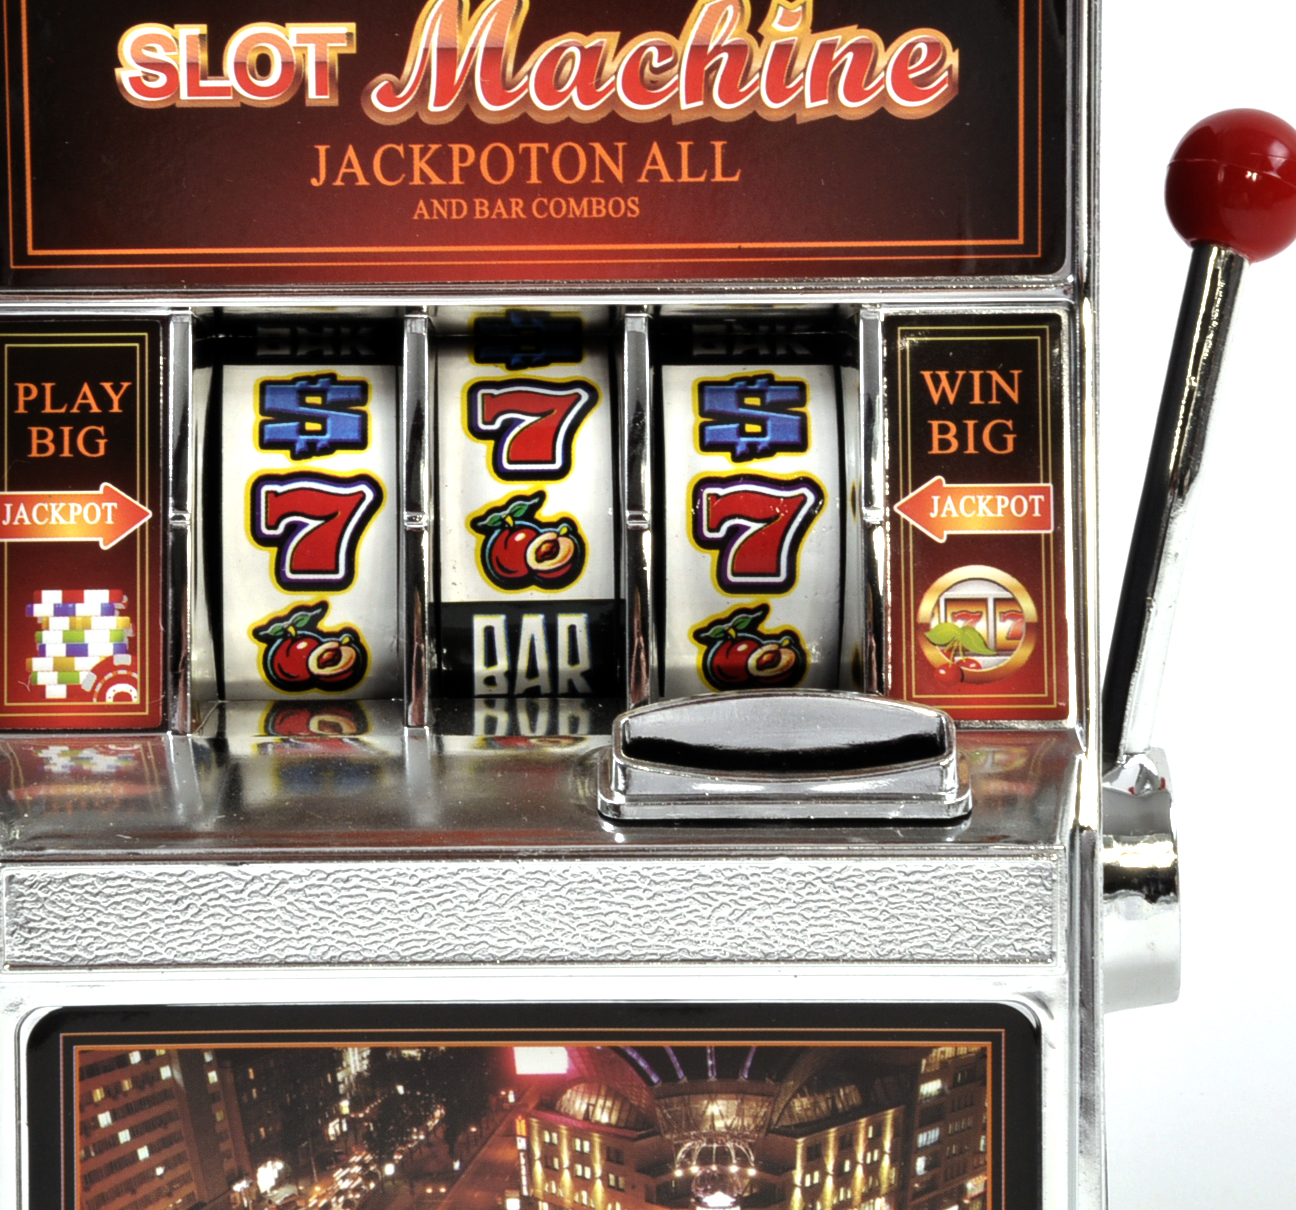 Slot machine fruit images